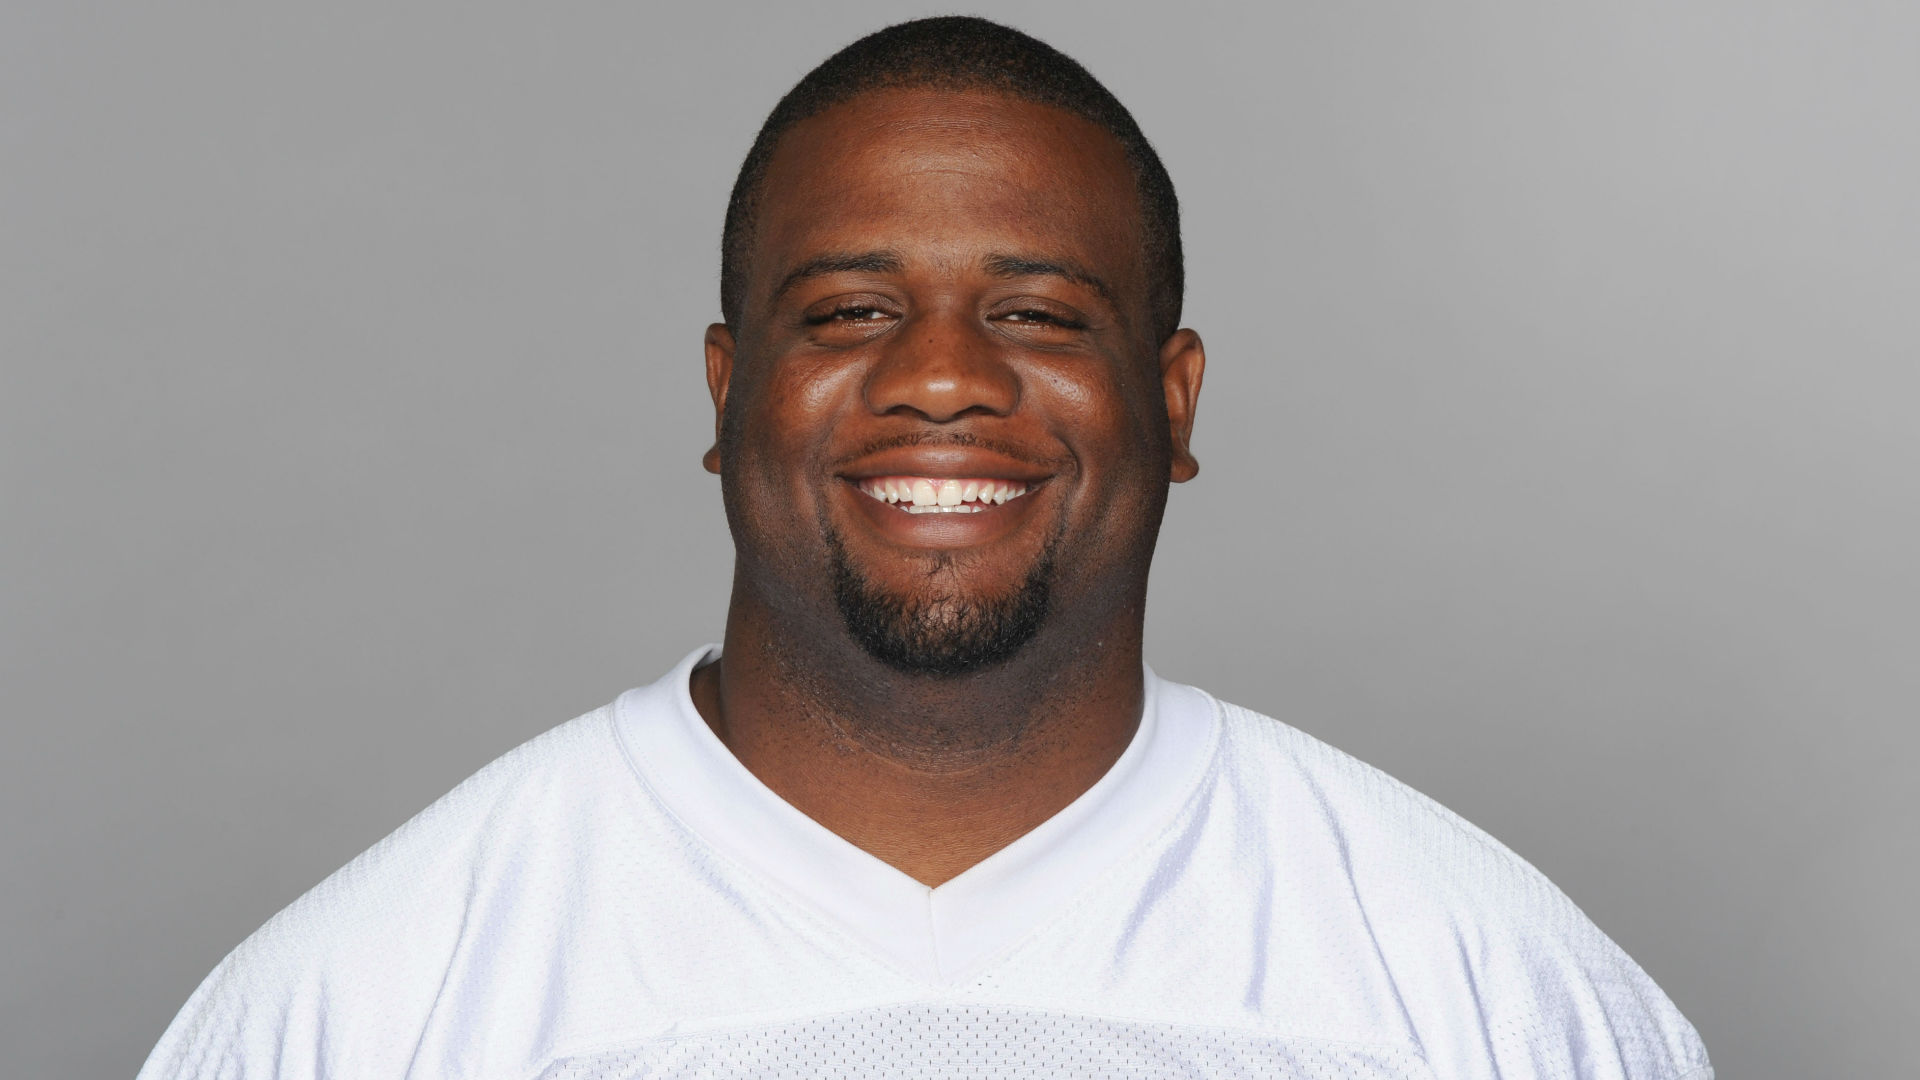 National Football League free agent allegedly stabbed by girlfriend in domestic dispute